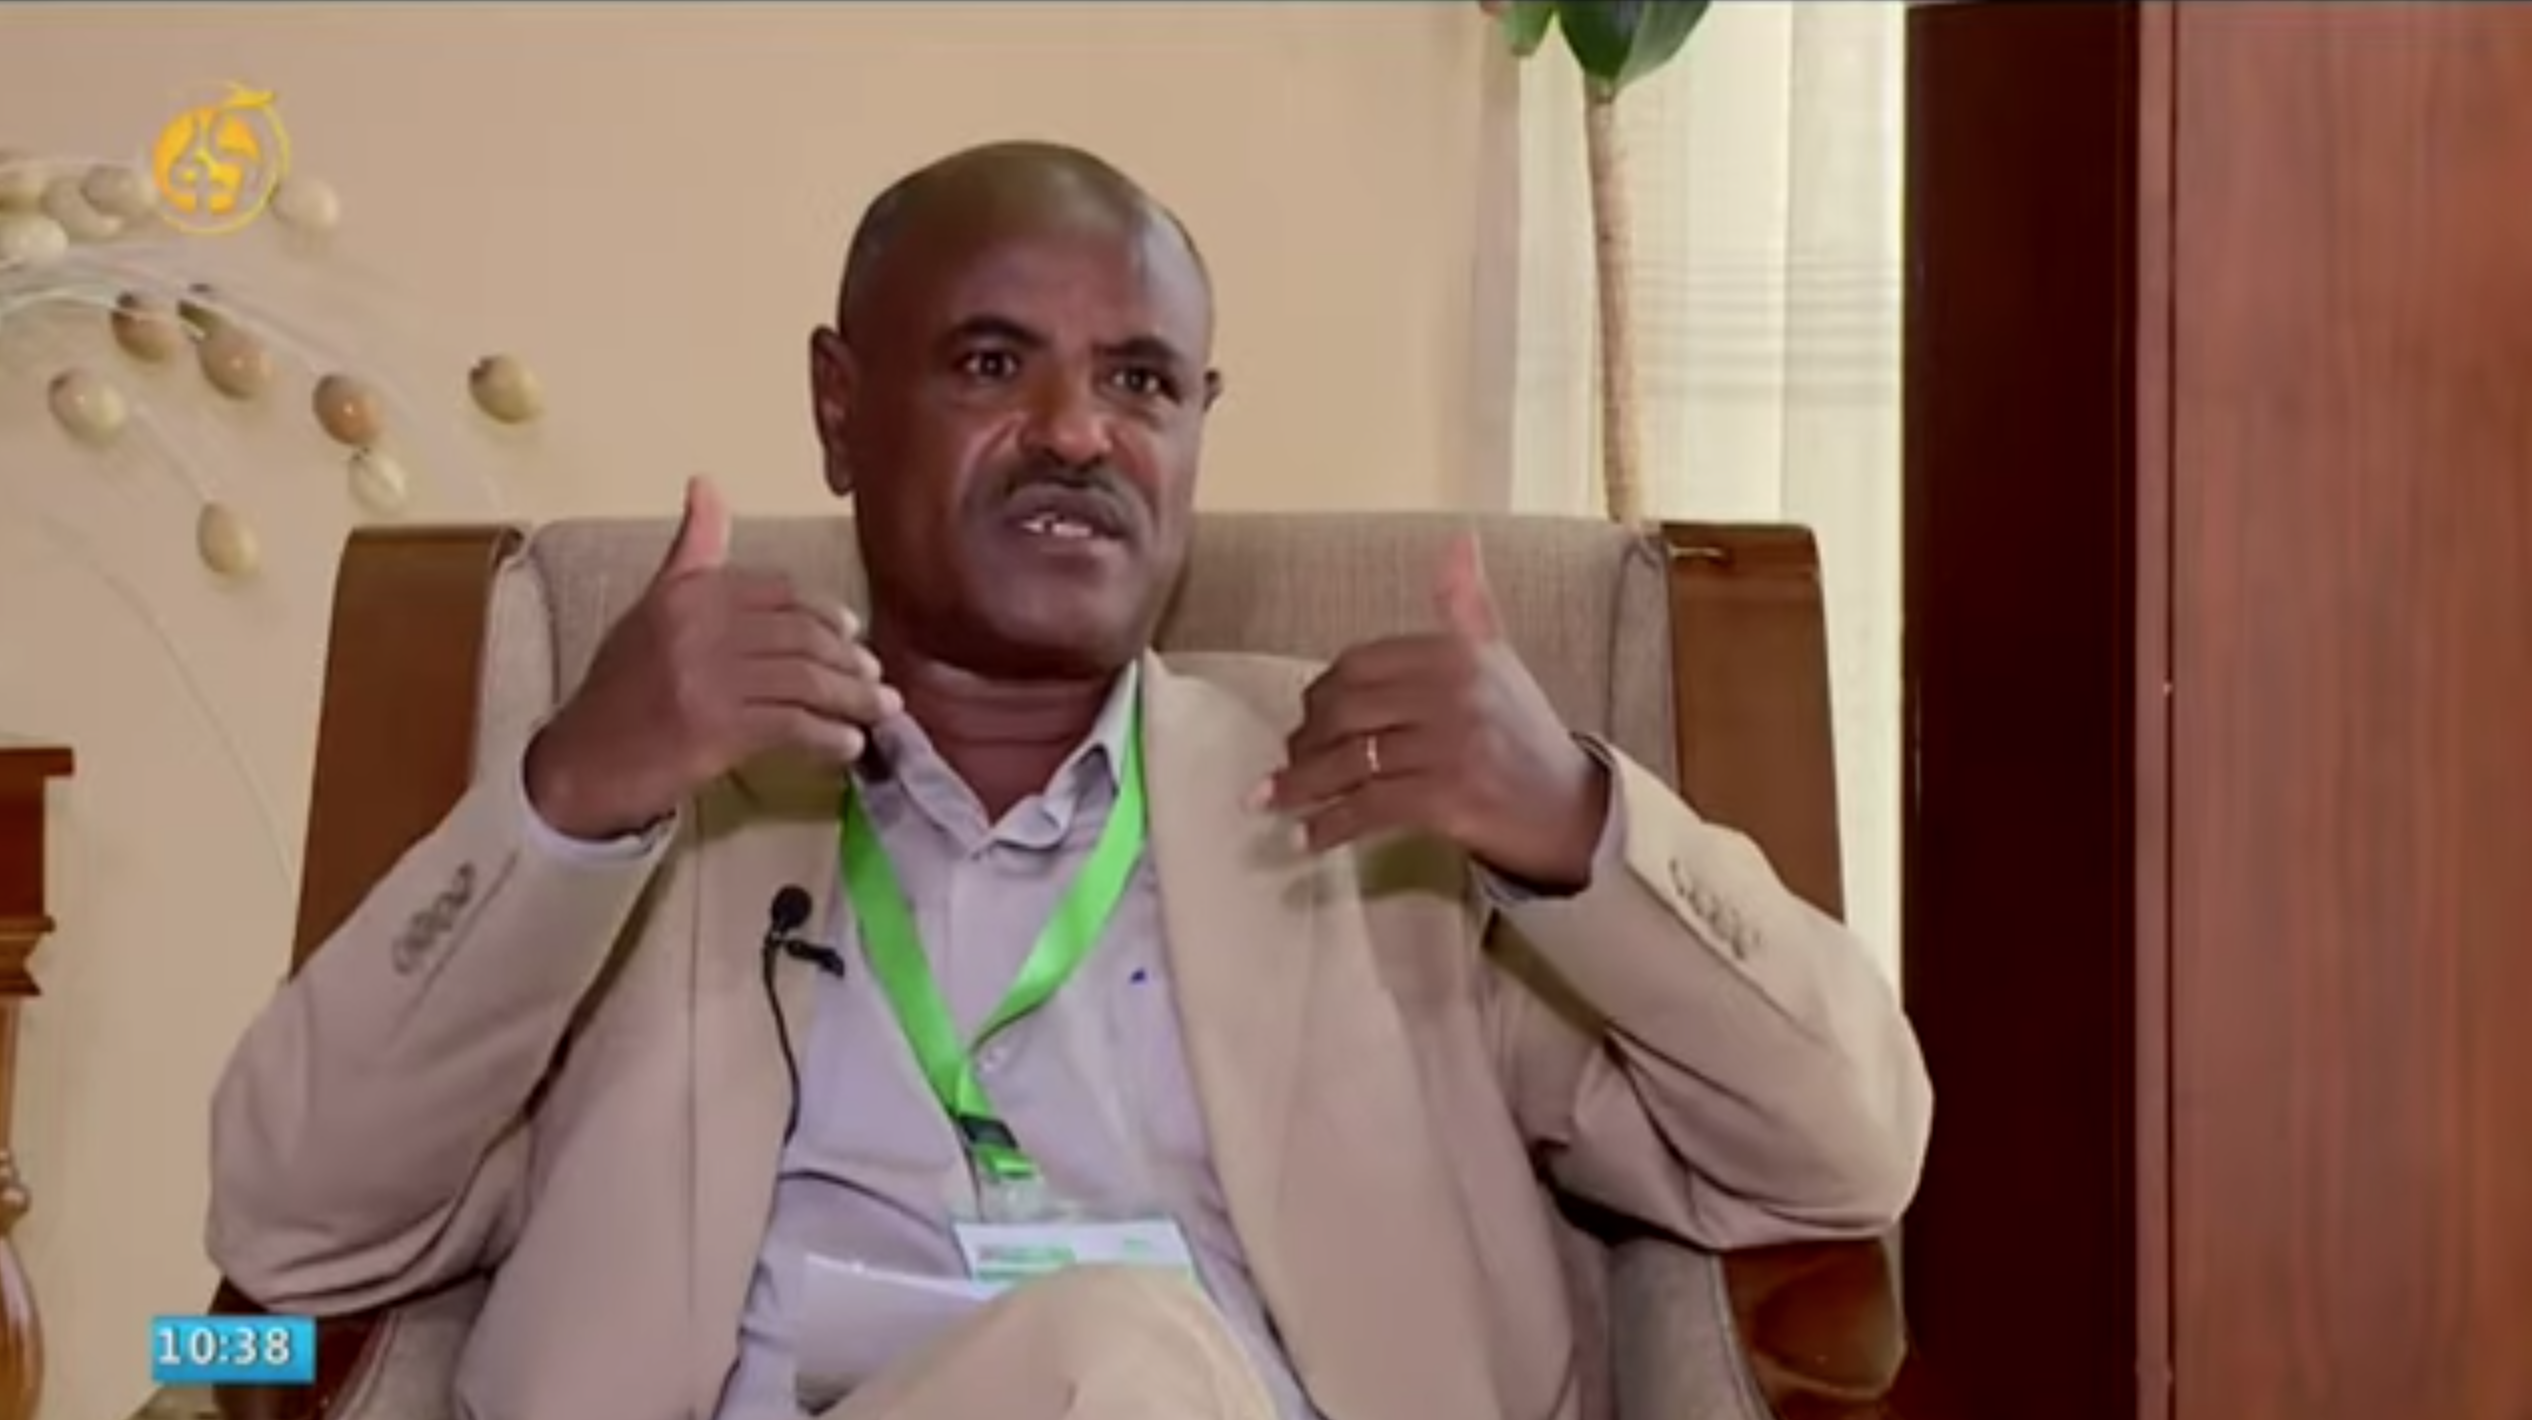 A Tigray interim admin official paints a grim picture of Tigray through the lens of agriculture